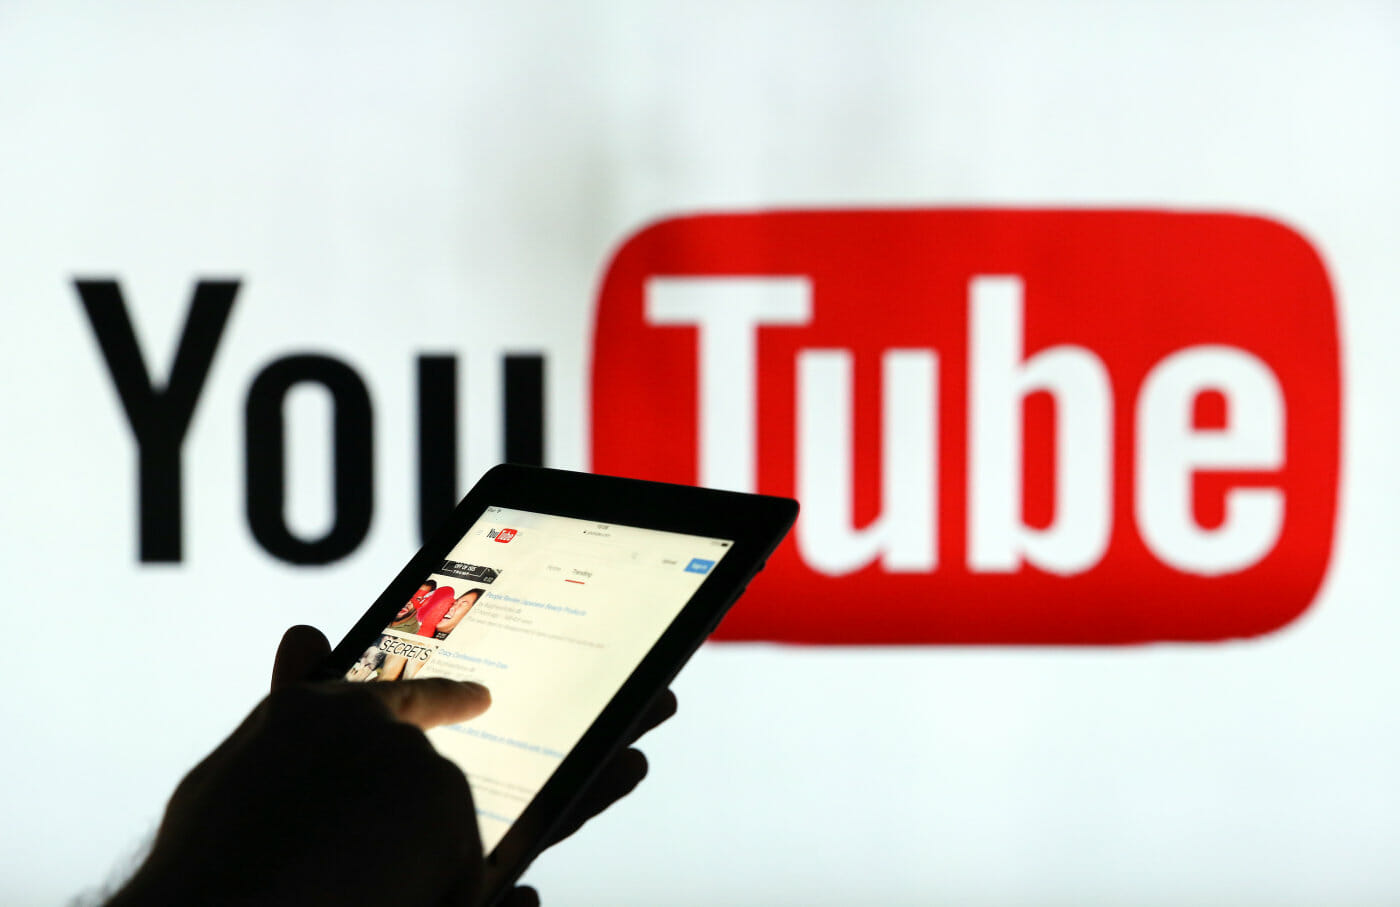 BREAKING: Police respond to active shooter at YouTube's headquarters campusYouTube Connect